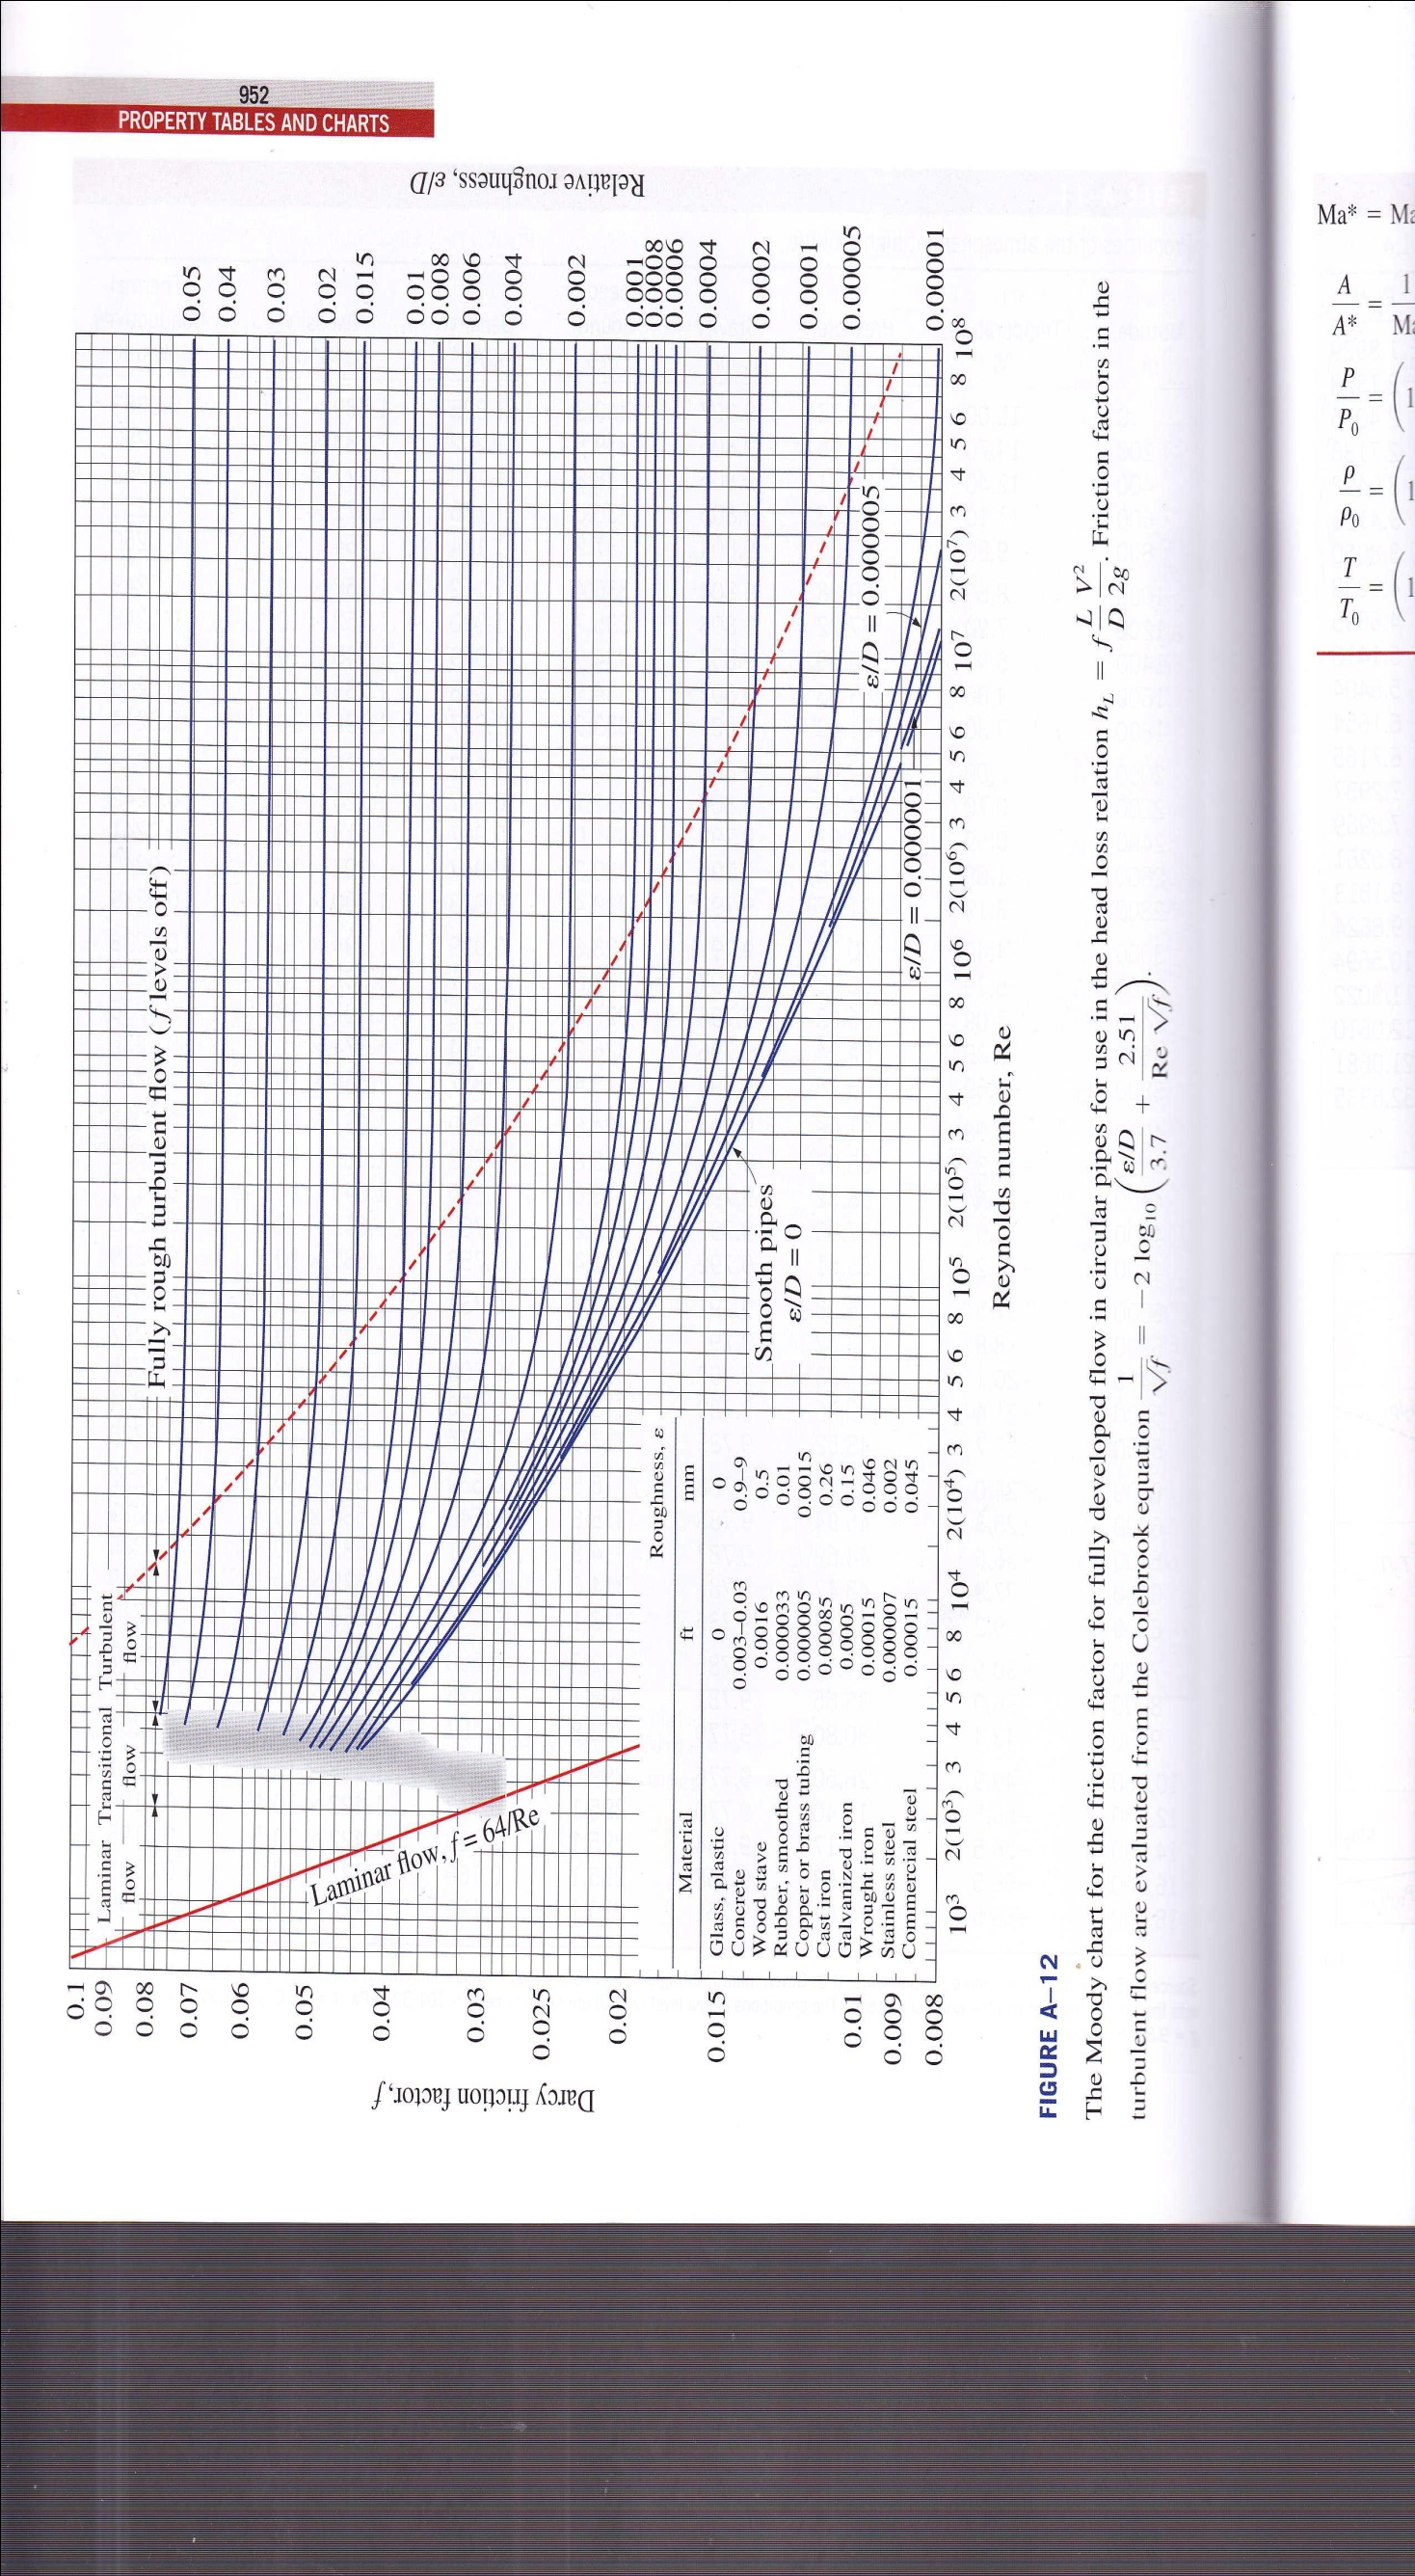 Lecture 8 internal flowpptx on emaze the moody chart ccuart Image collections